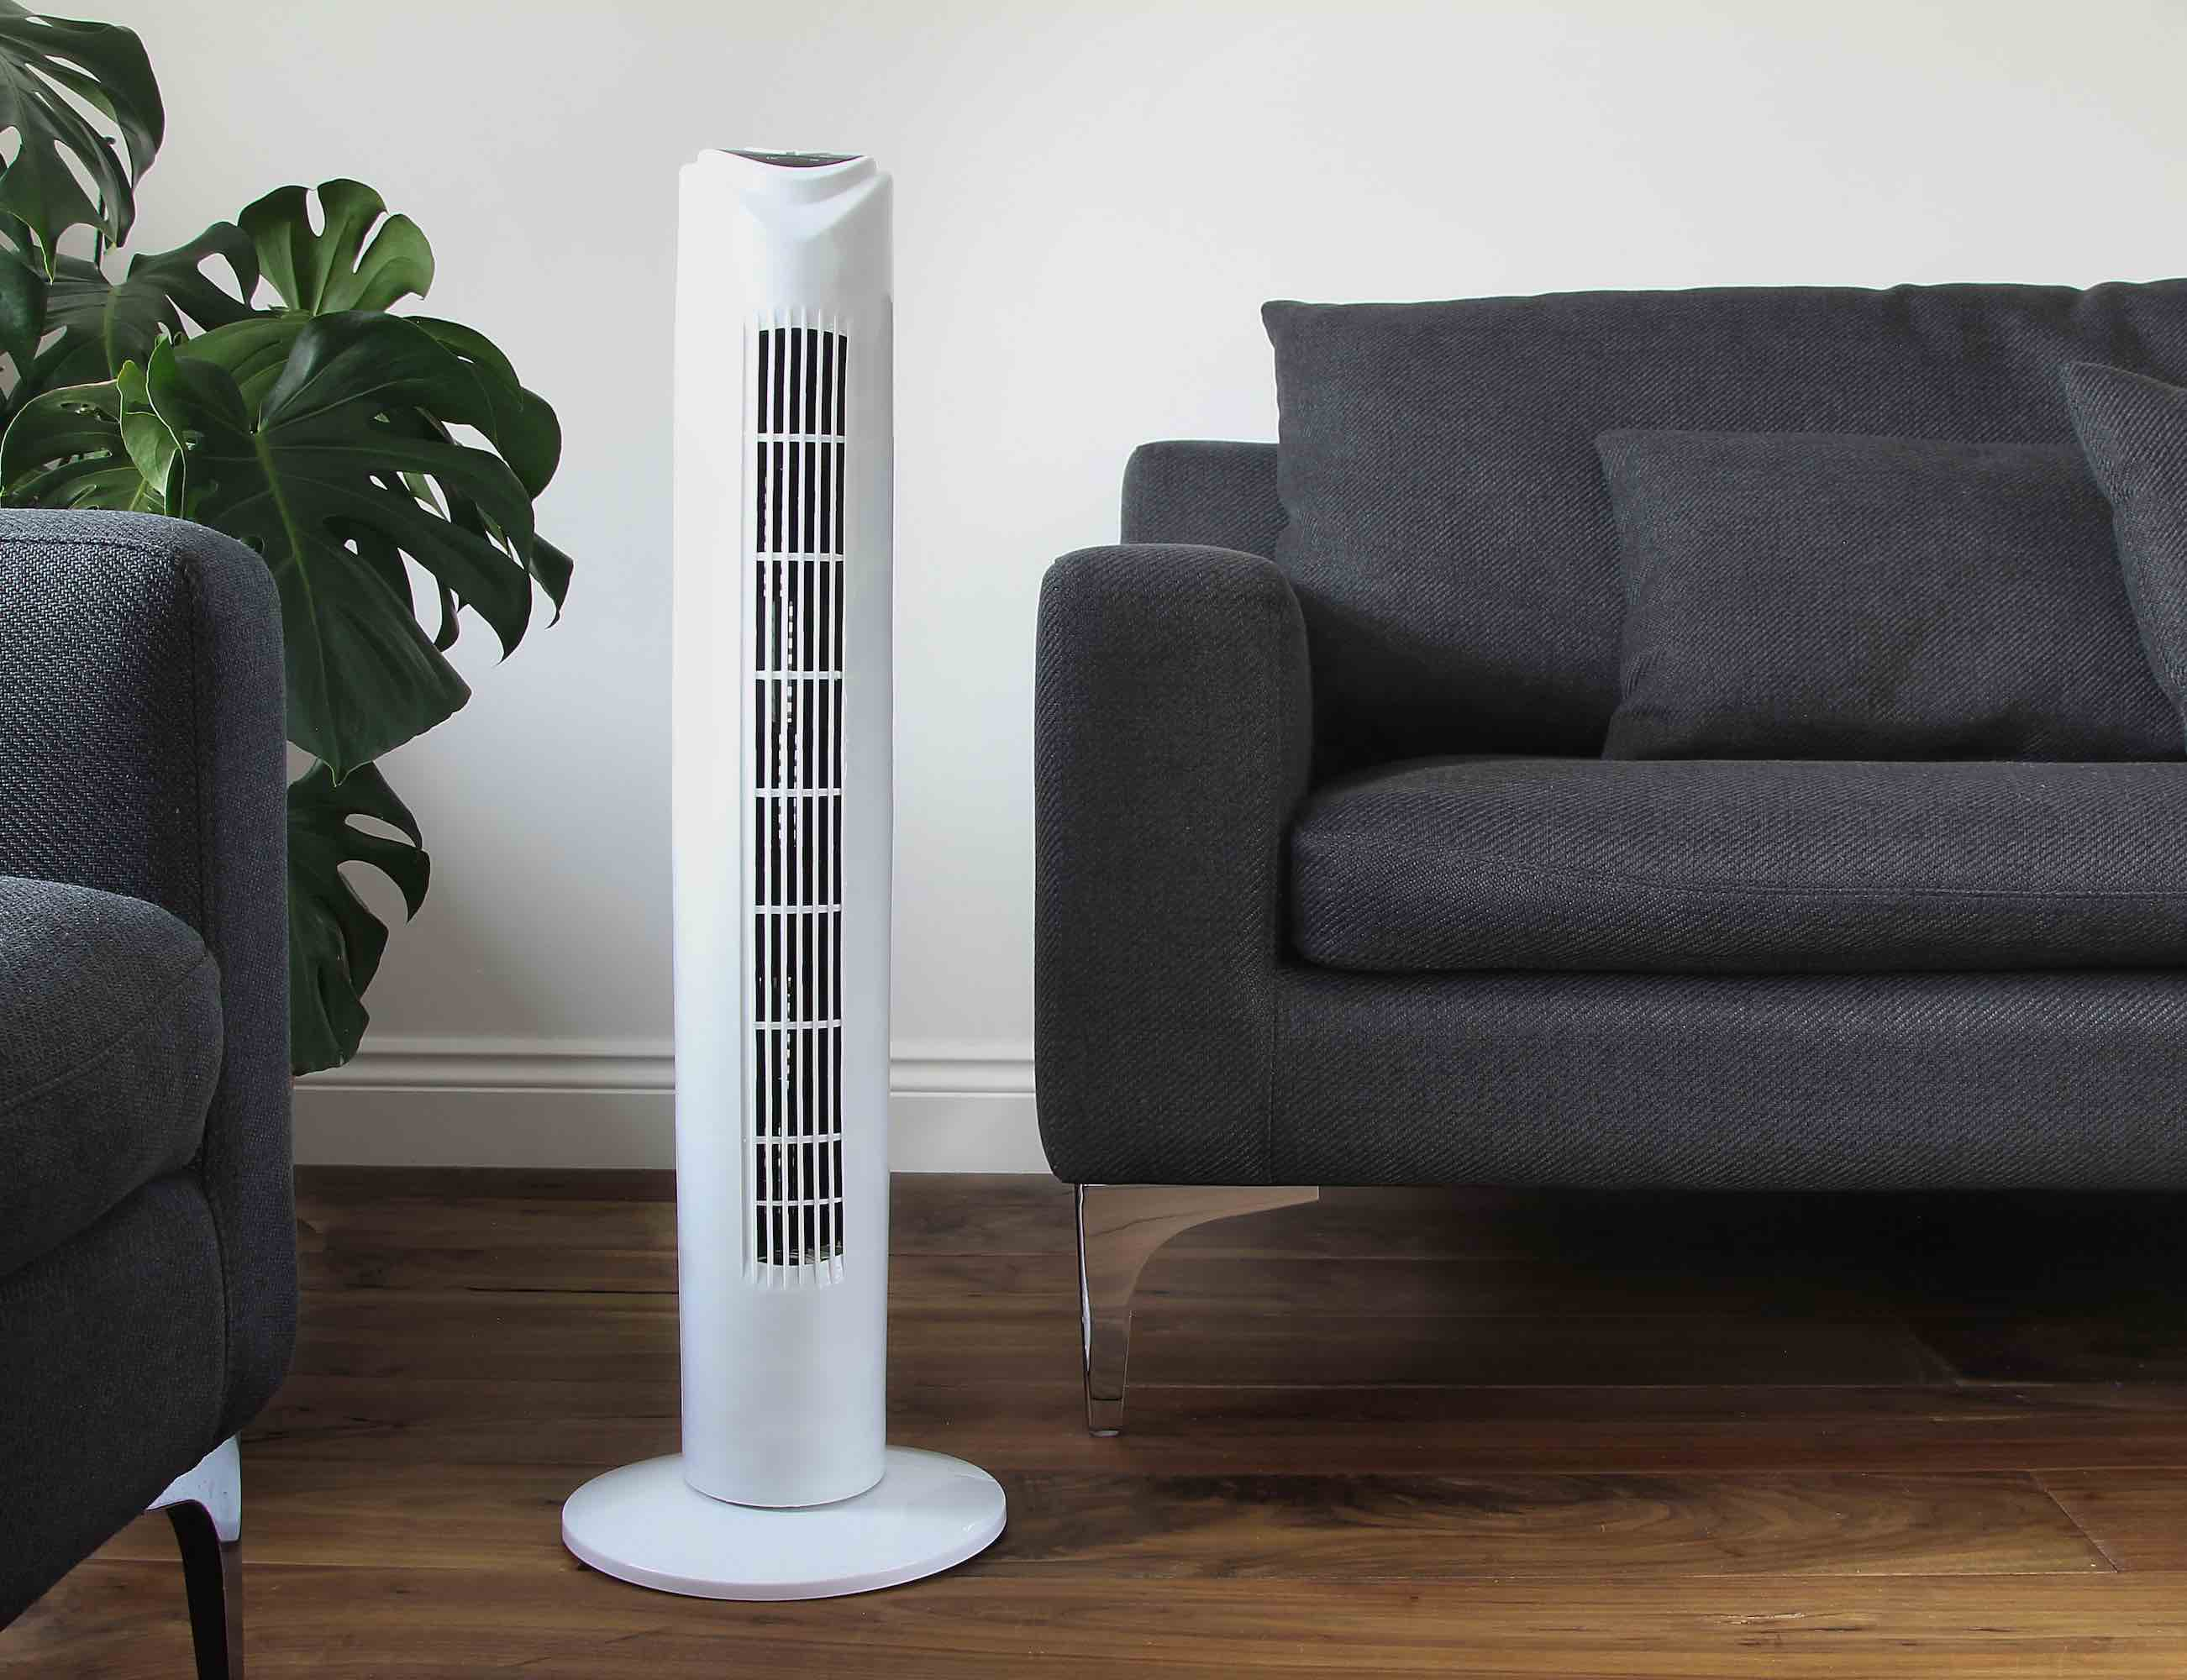 SMARTOWER Voice Controlled Smart Fan turns on with just your voice